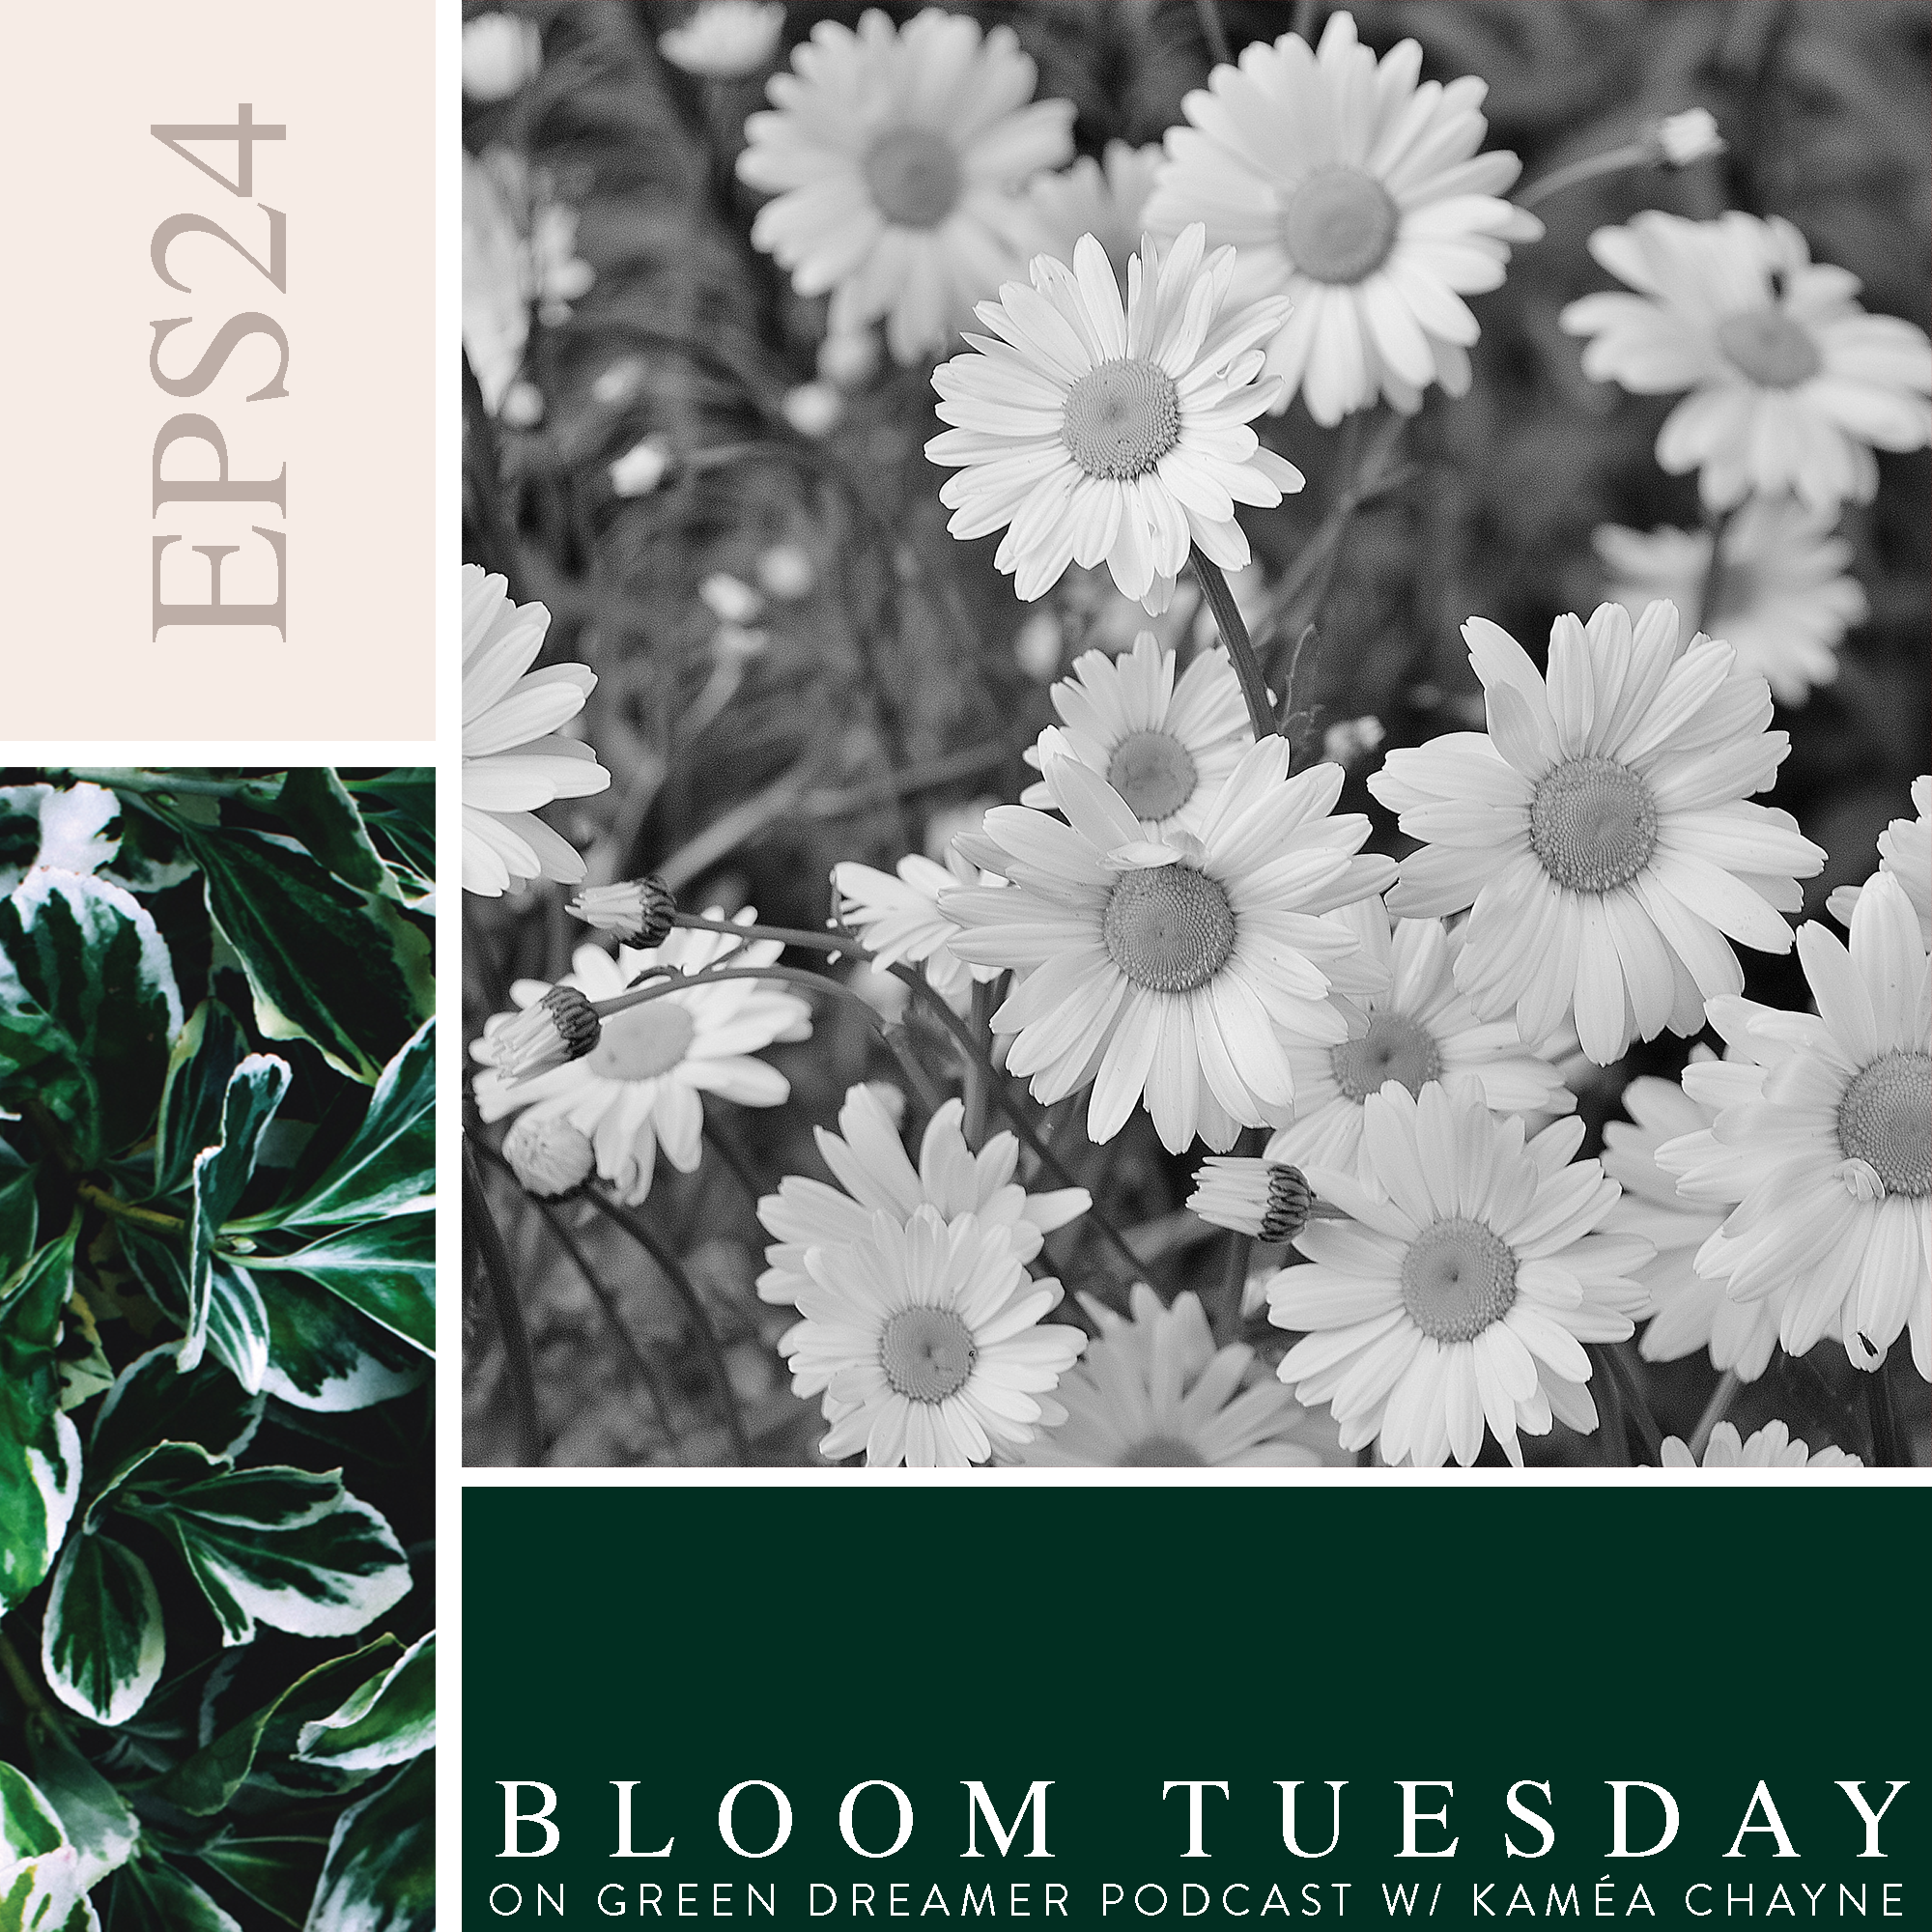 24) BLOOM TUESDAY